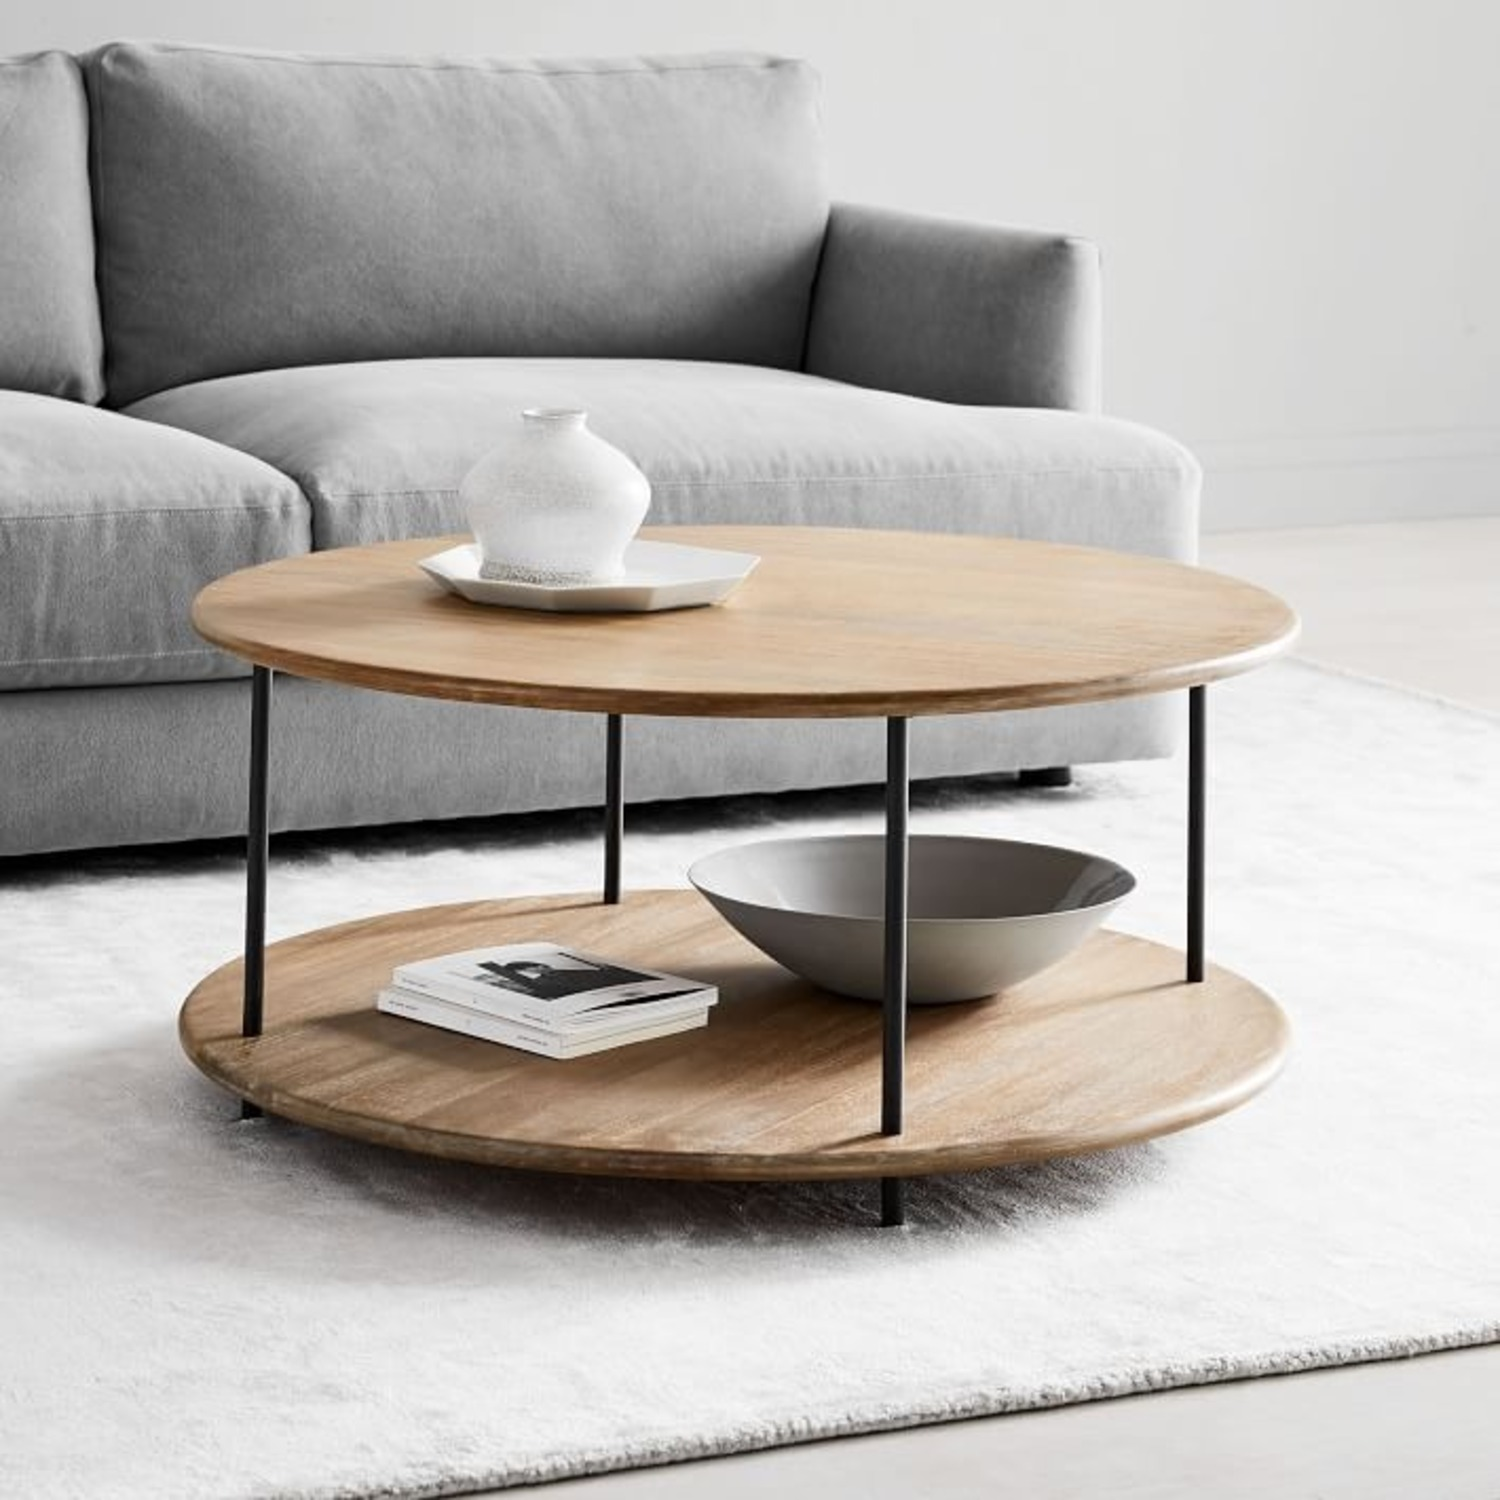 West Elm Tiered Wood Coffee Table - image-2